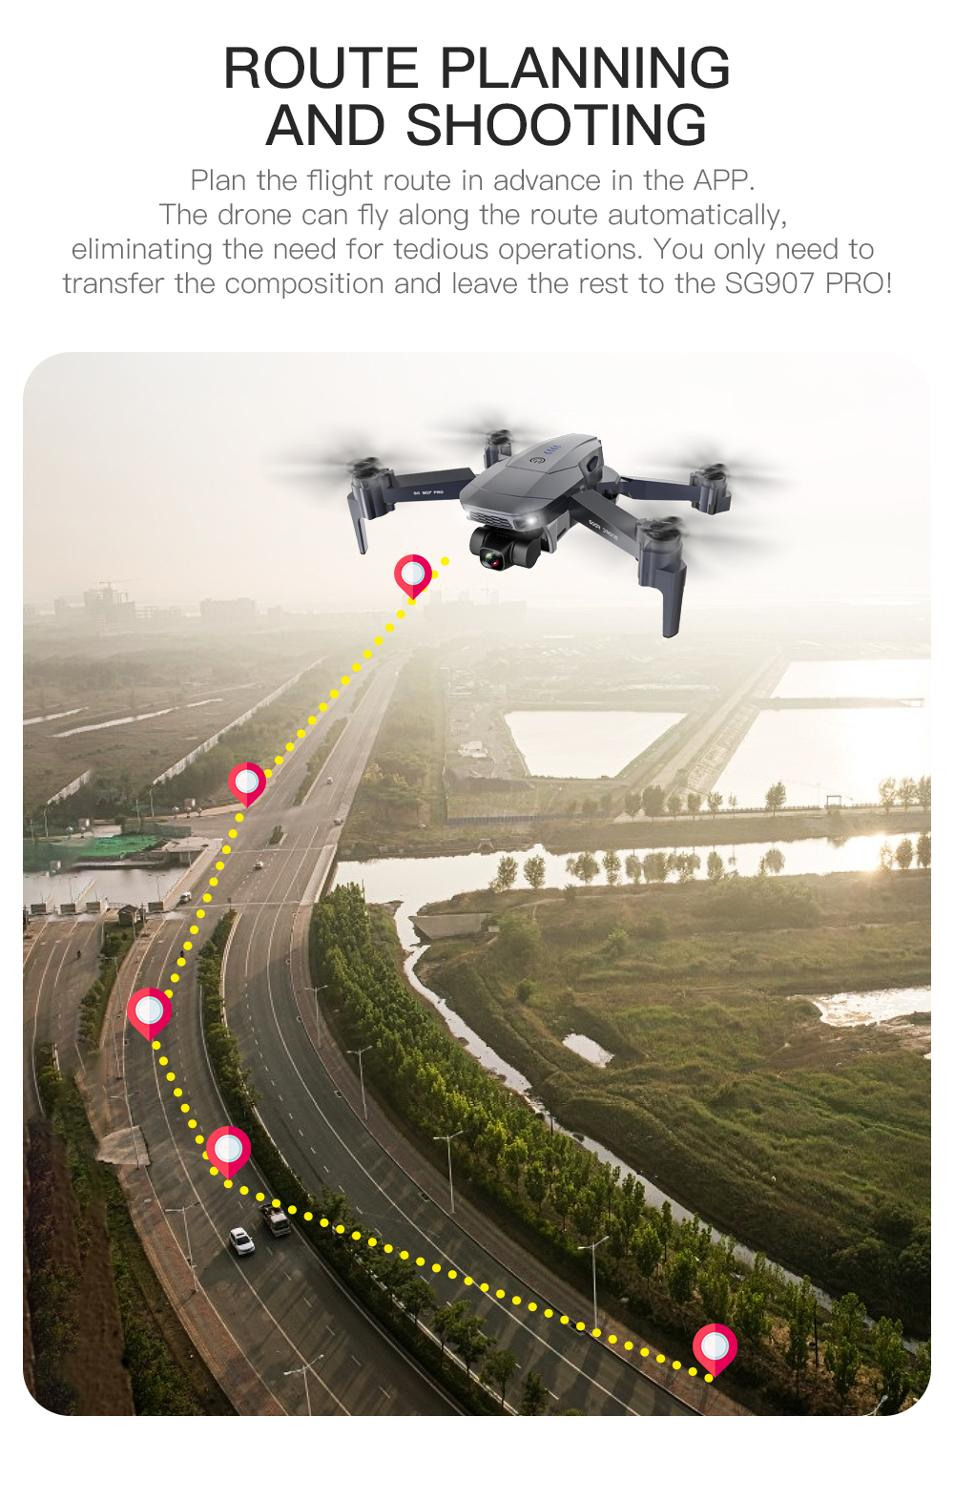 SG907 PRO / SG907 Camera Drone 4k GPS Drones with 2 Axis Gimbal Camera HD 5G Wifi Wide Angle FPV Optical Flow RC Quadcopter dron enlarge